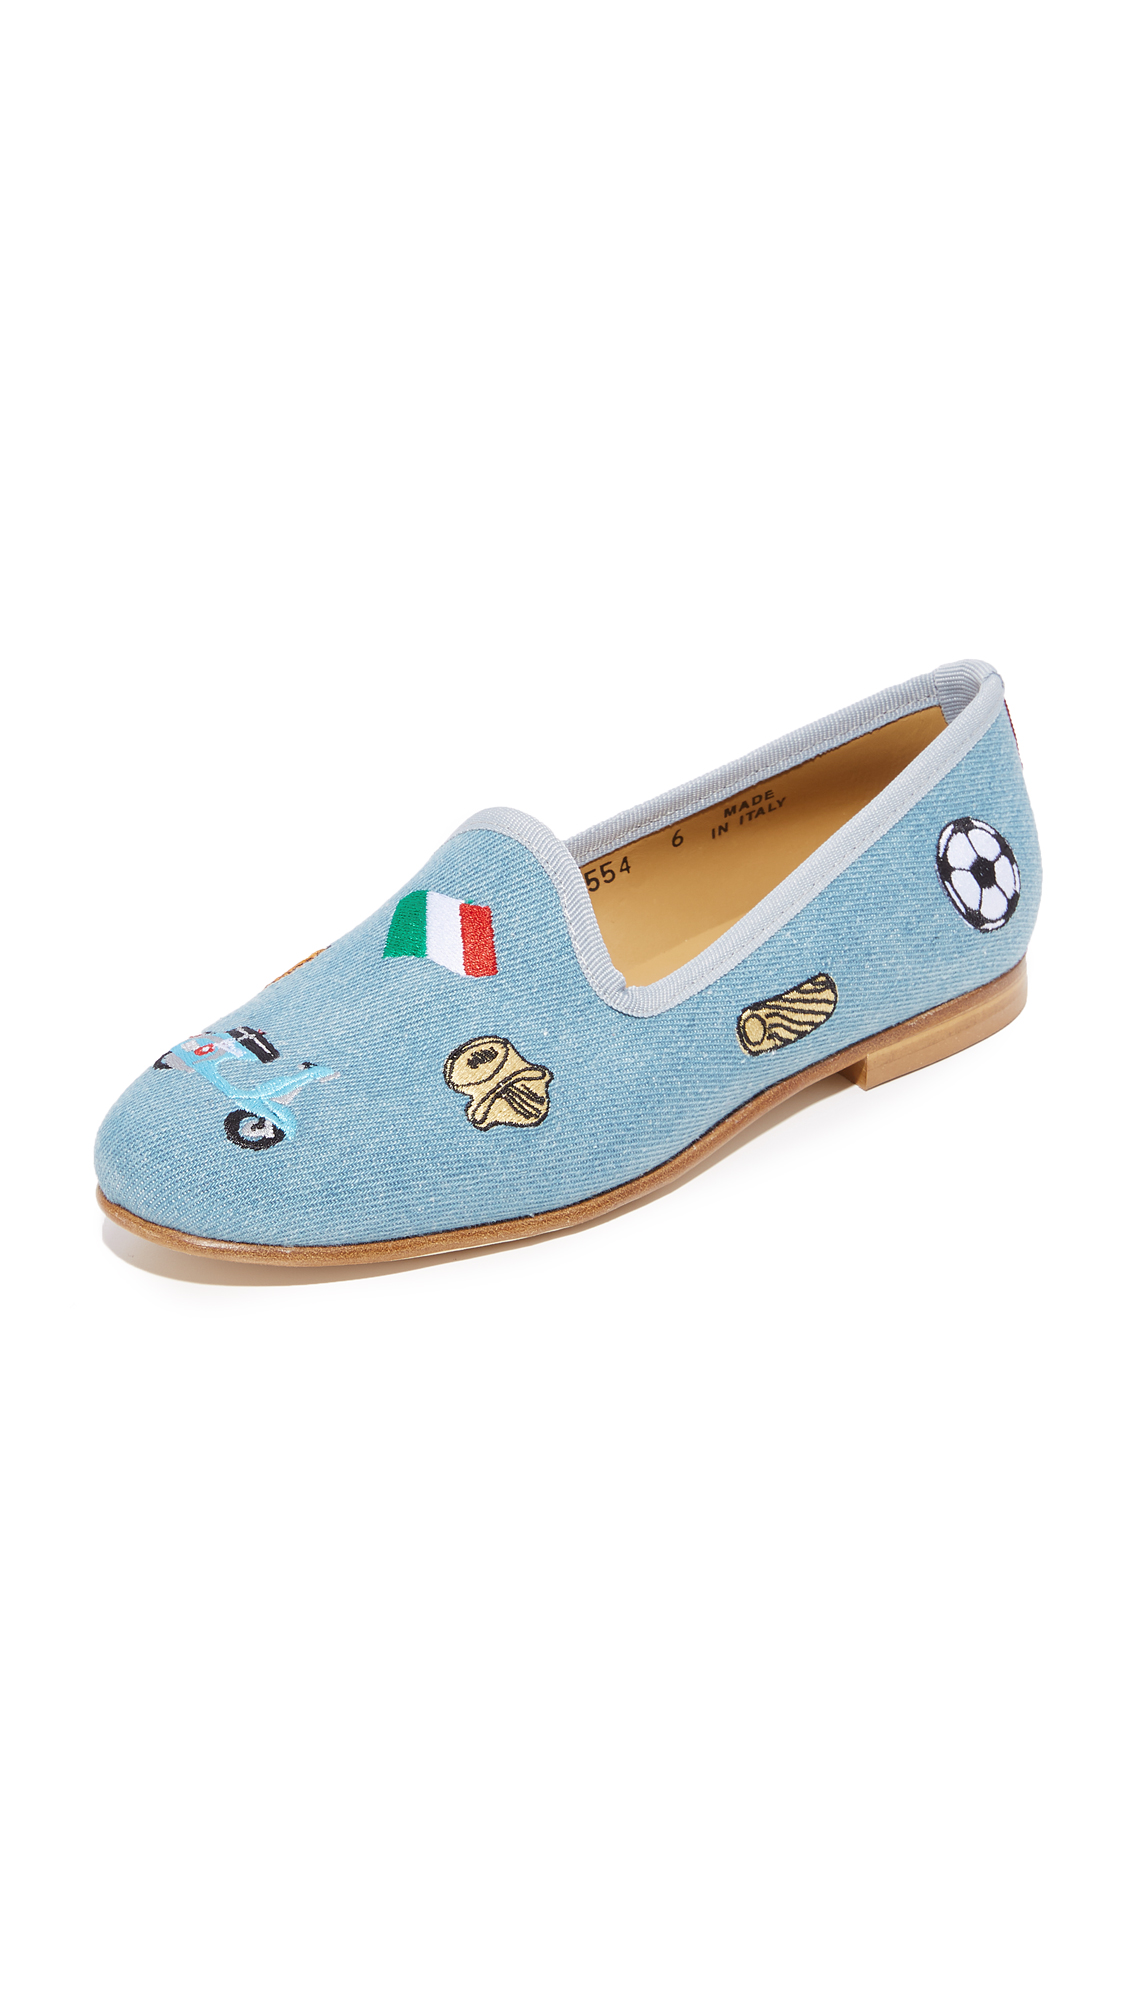 Del Toro Italia Modern Flats - Light Denim